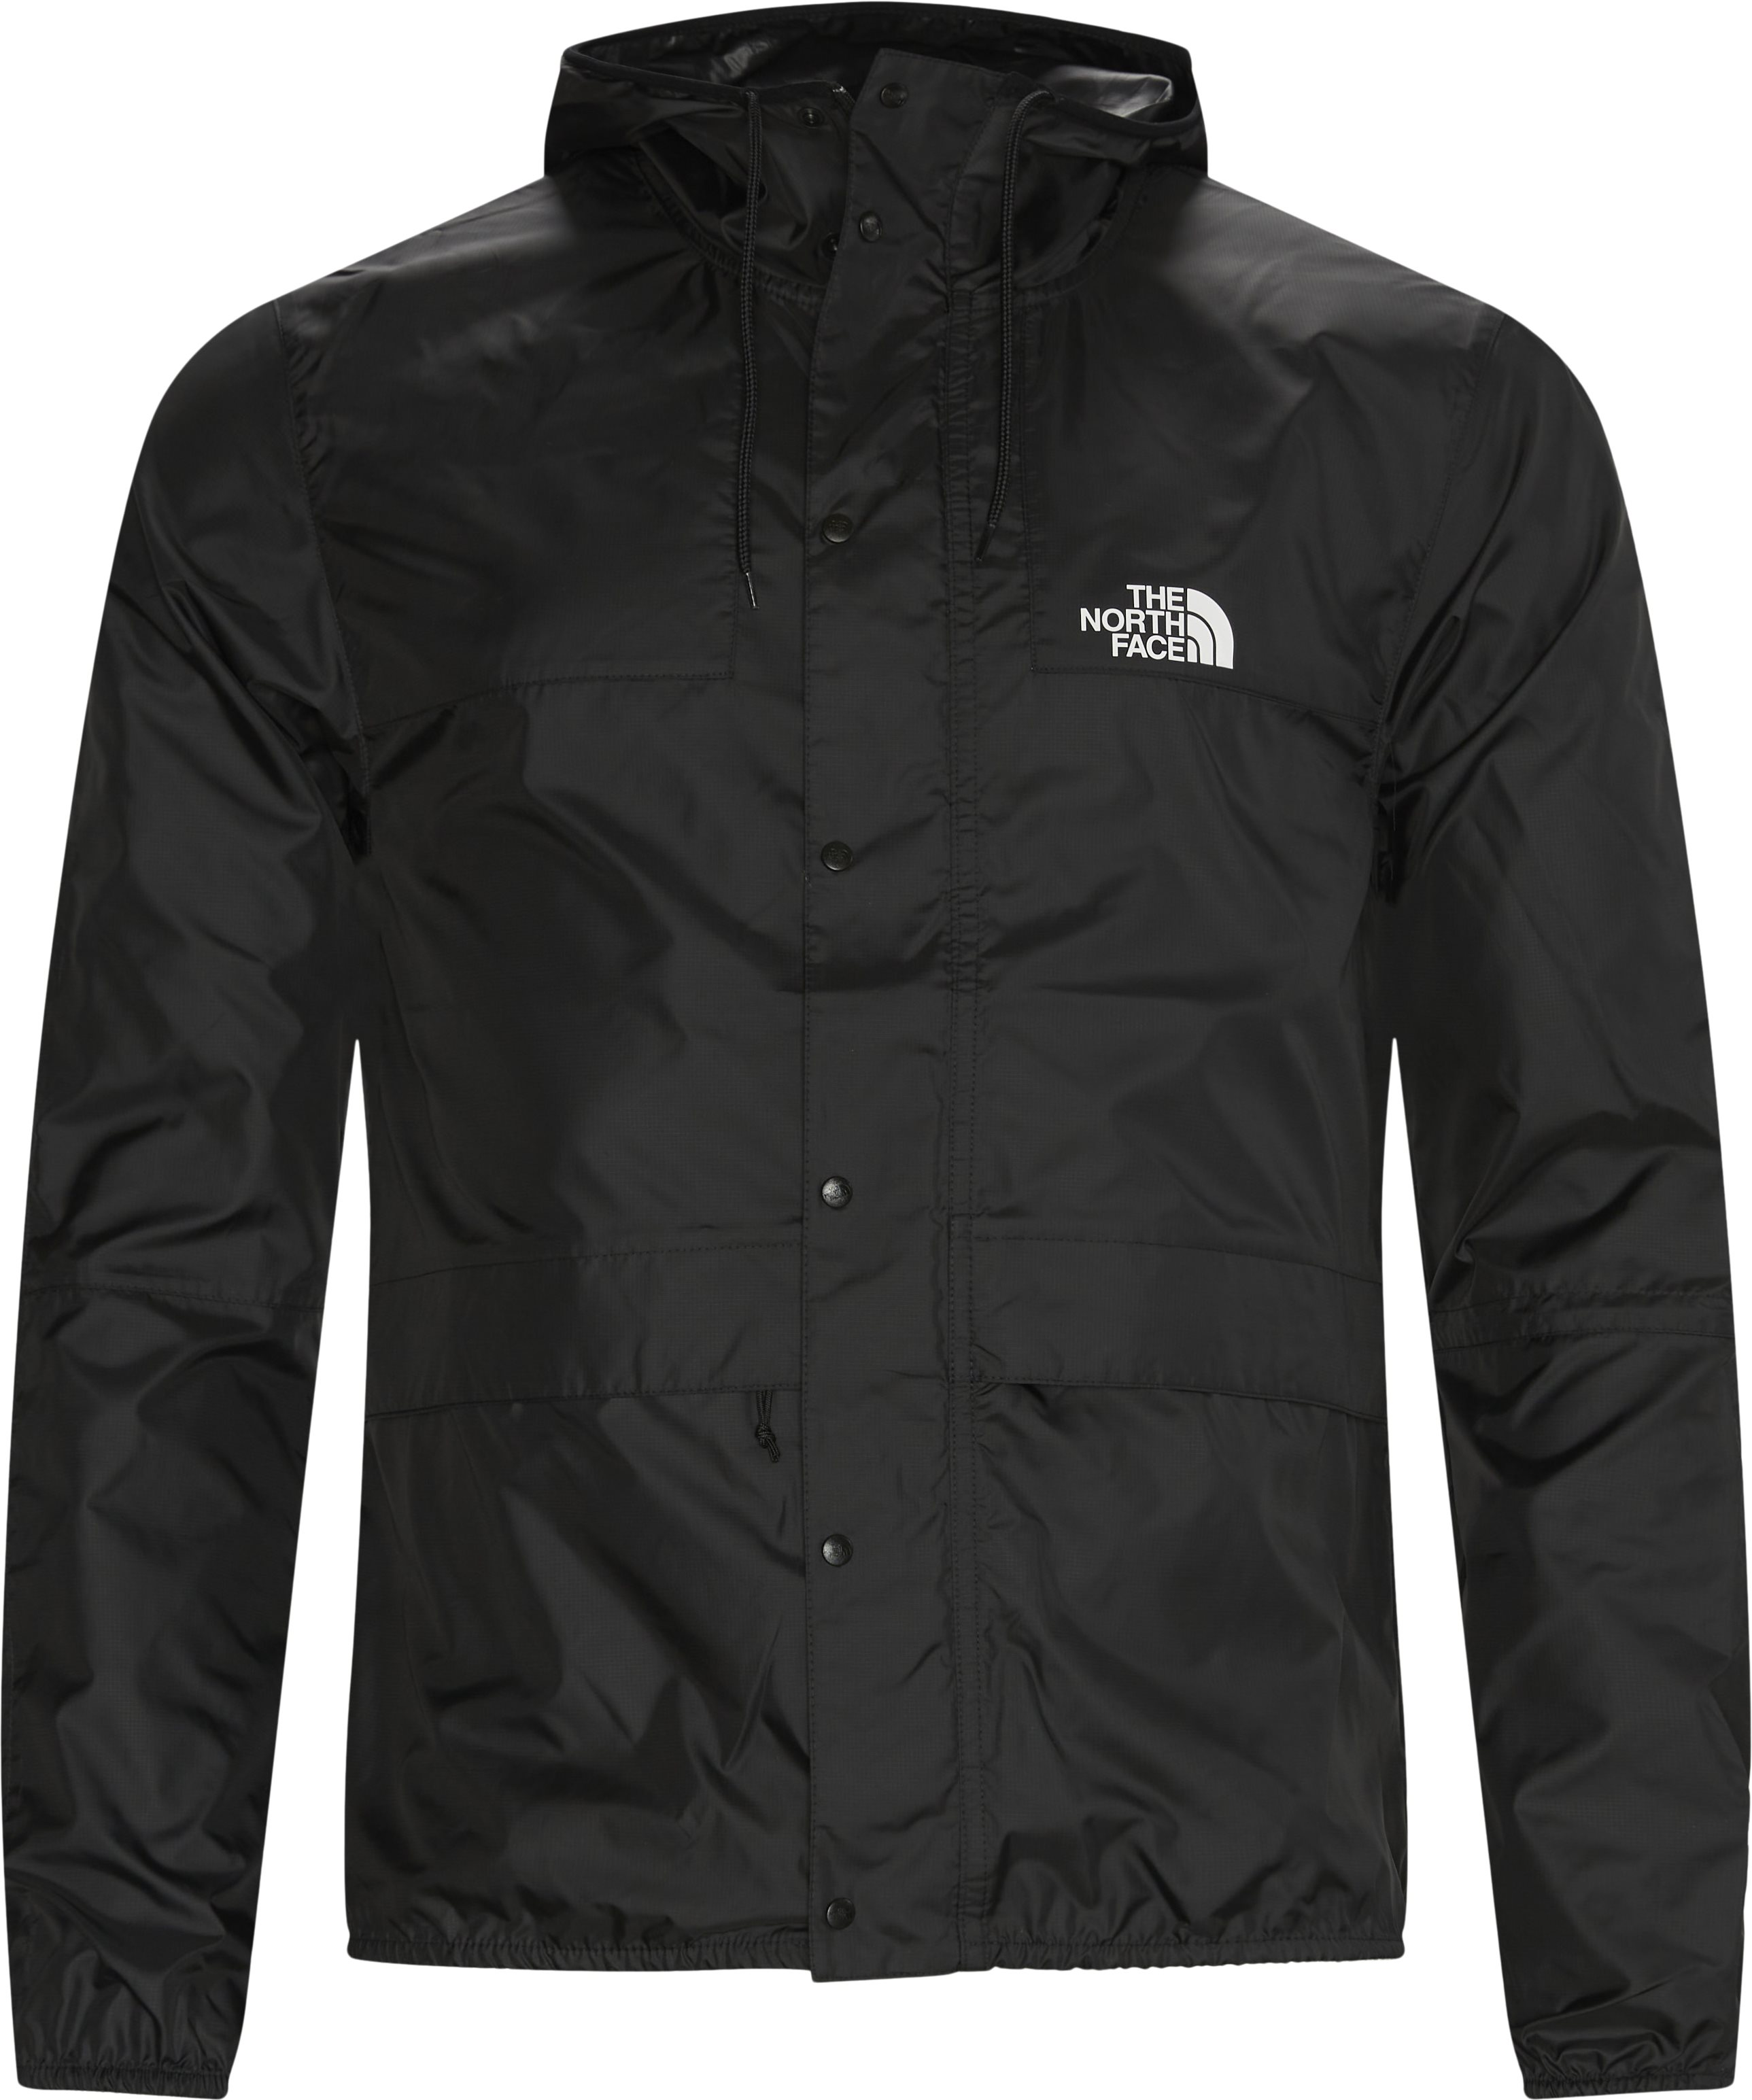 1985 Mountain Jacket - Jackor - Regular - Svart